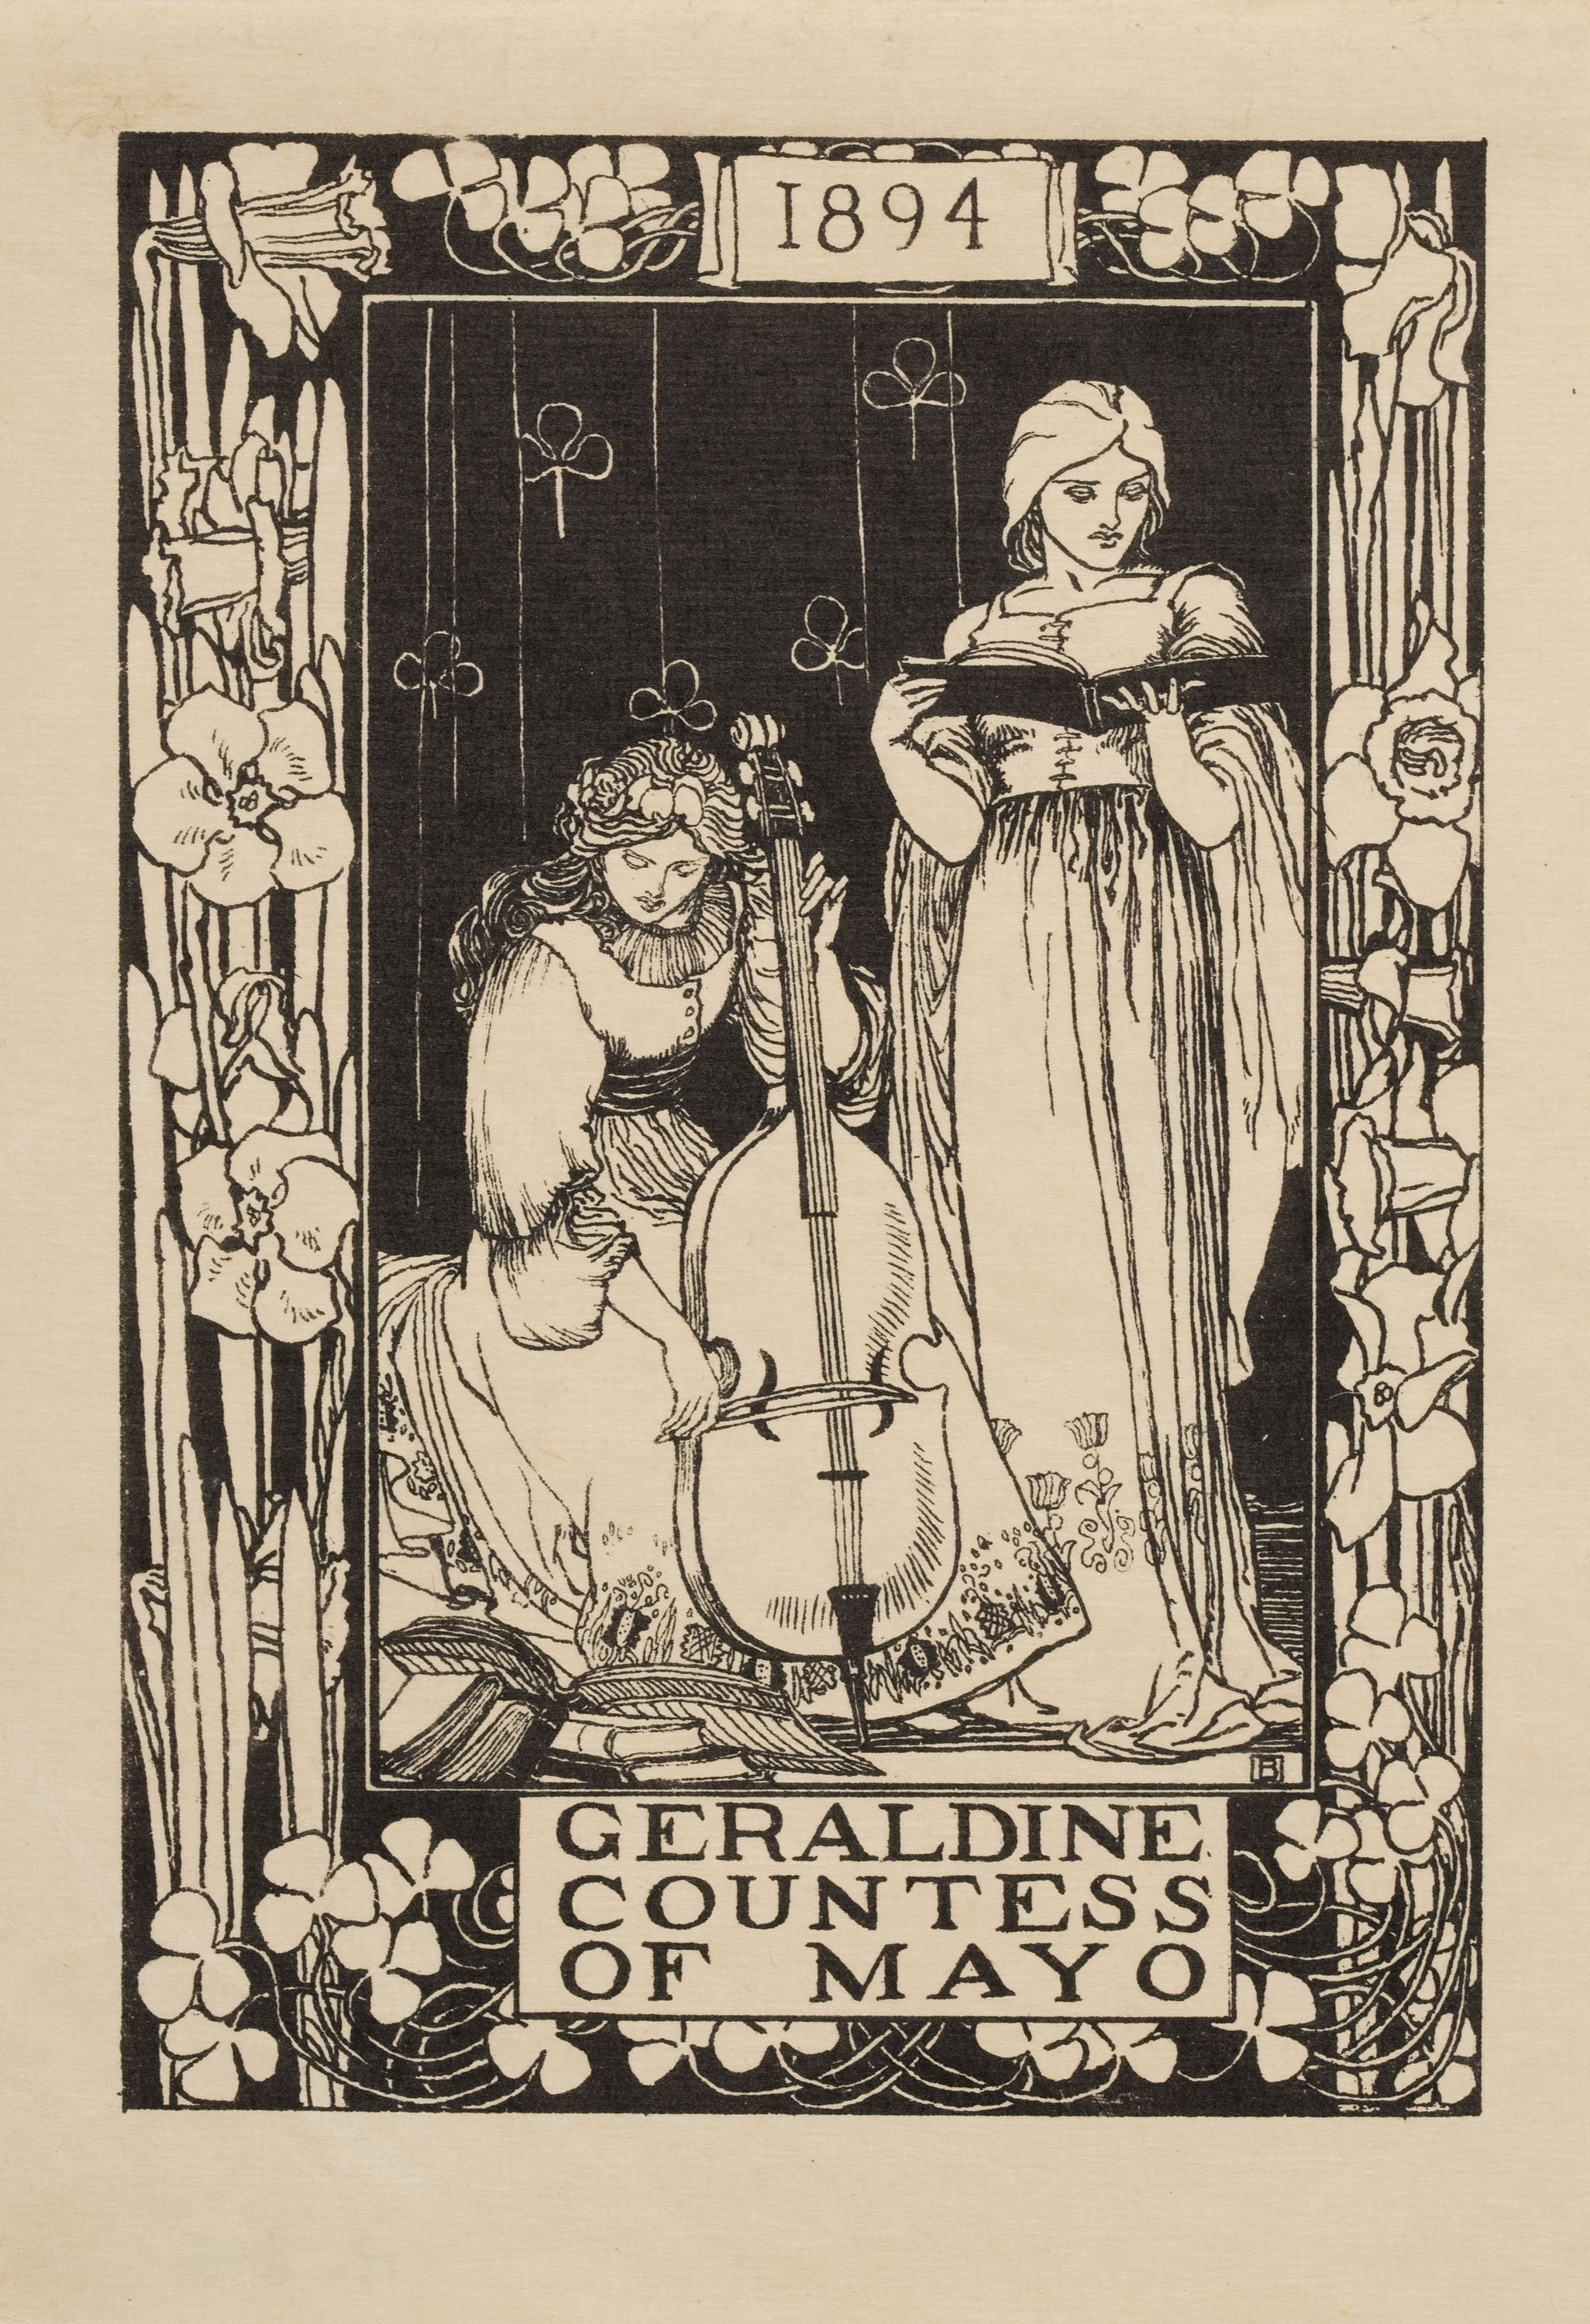 Robert Anning Bell, Ex-libris Geraldine Countess of Mayo, 1894